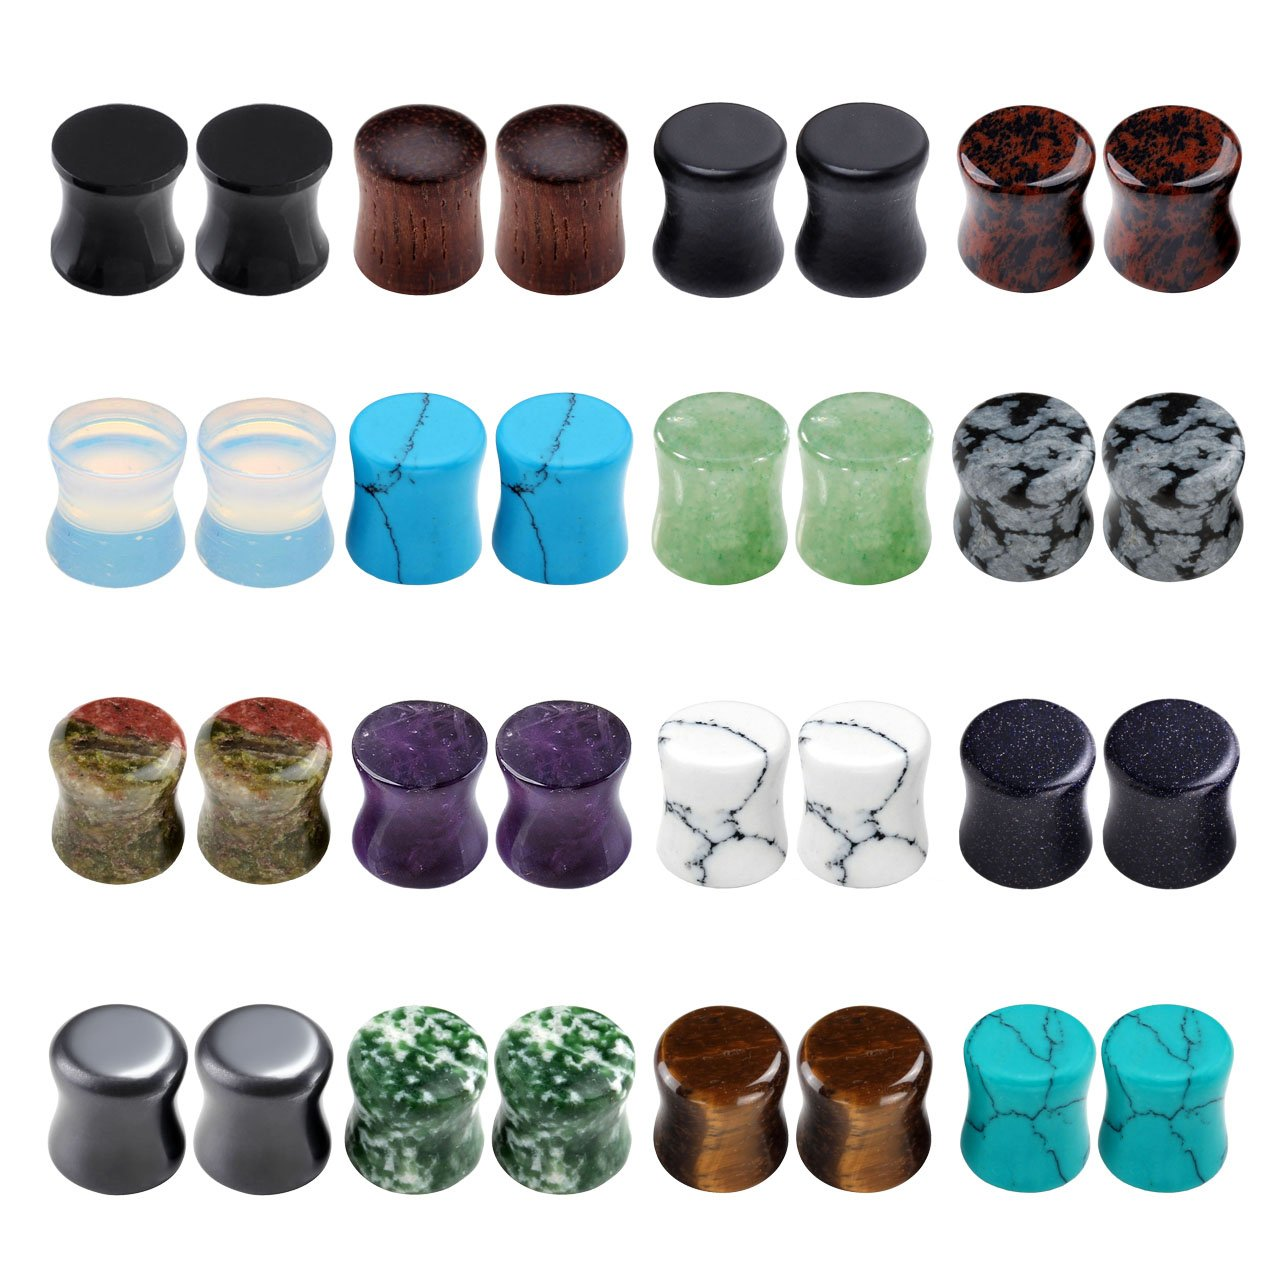 PiercingJ Acrylic Wood Mixed Stone Plugs 16 Pairs/32 Pieces Set Ear Plugs Ear Tunnels Ear Gauges Double Flared Ear Expander Stretcher Set